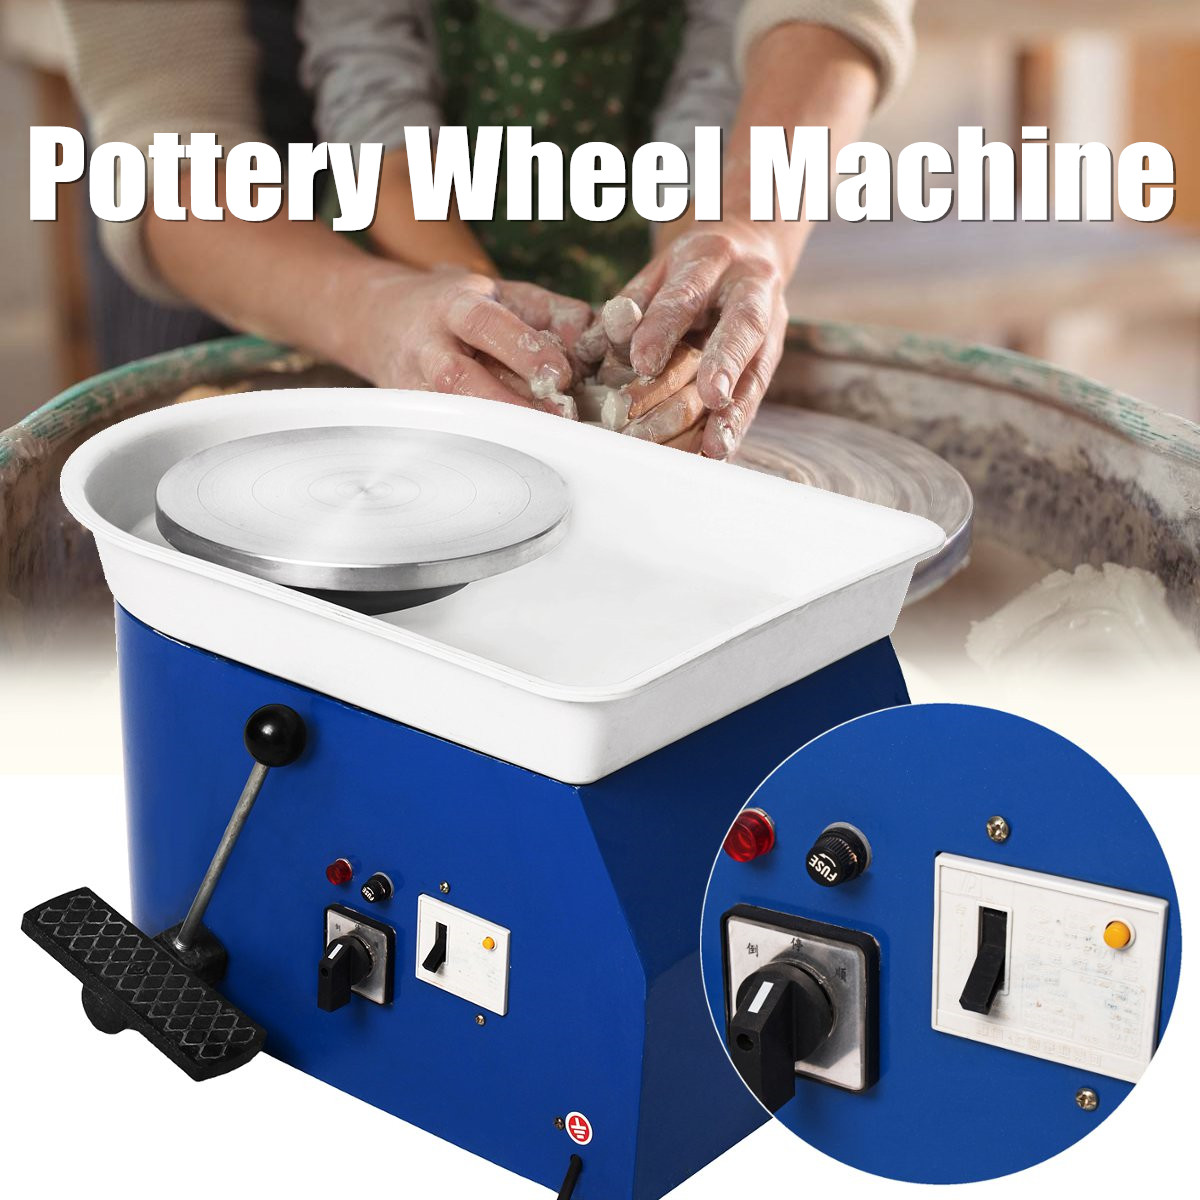 250W 220V Pottery Forming Machine Pottery Wheel Ceramic Machine Ceramics DIY Clay Machine polish pottery spoon rest blue bells